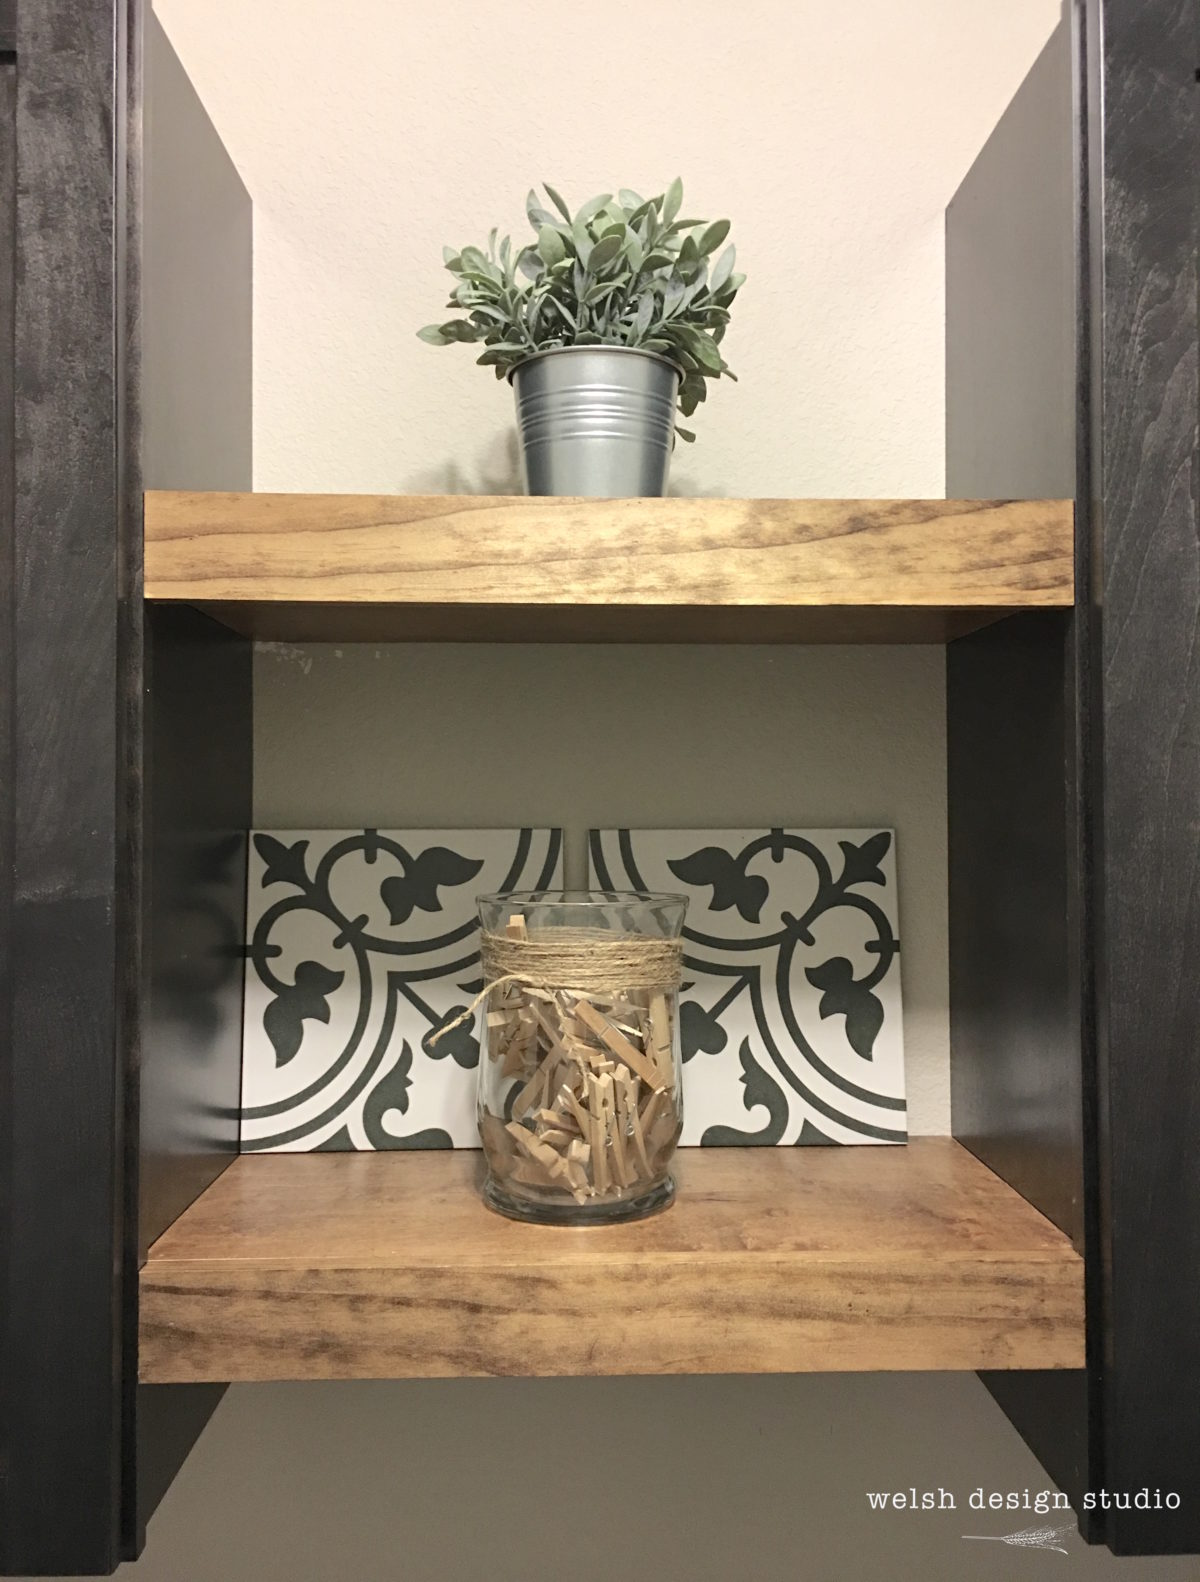 diy farmhouse shelves